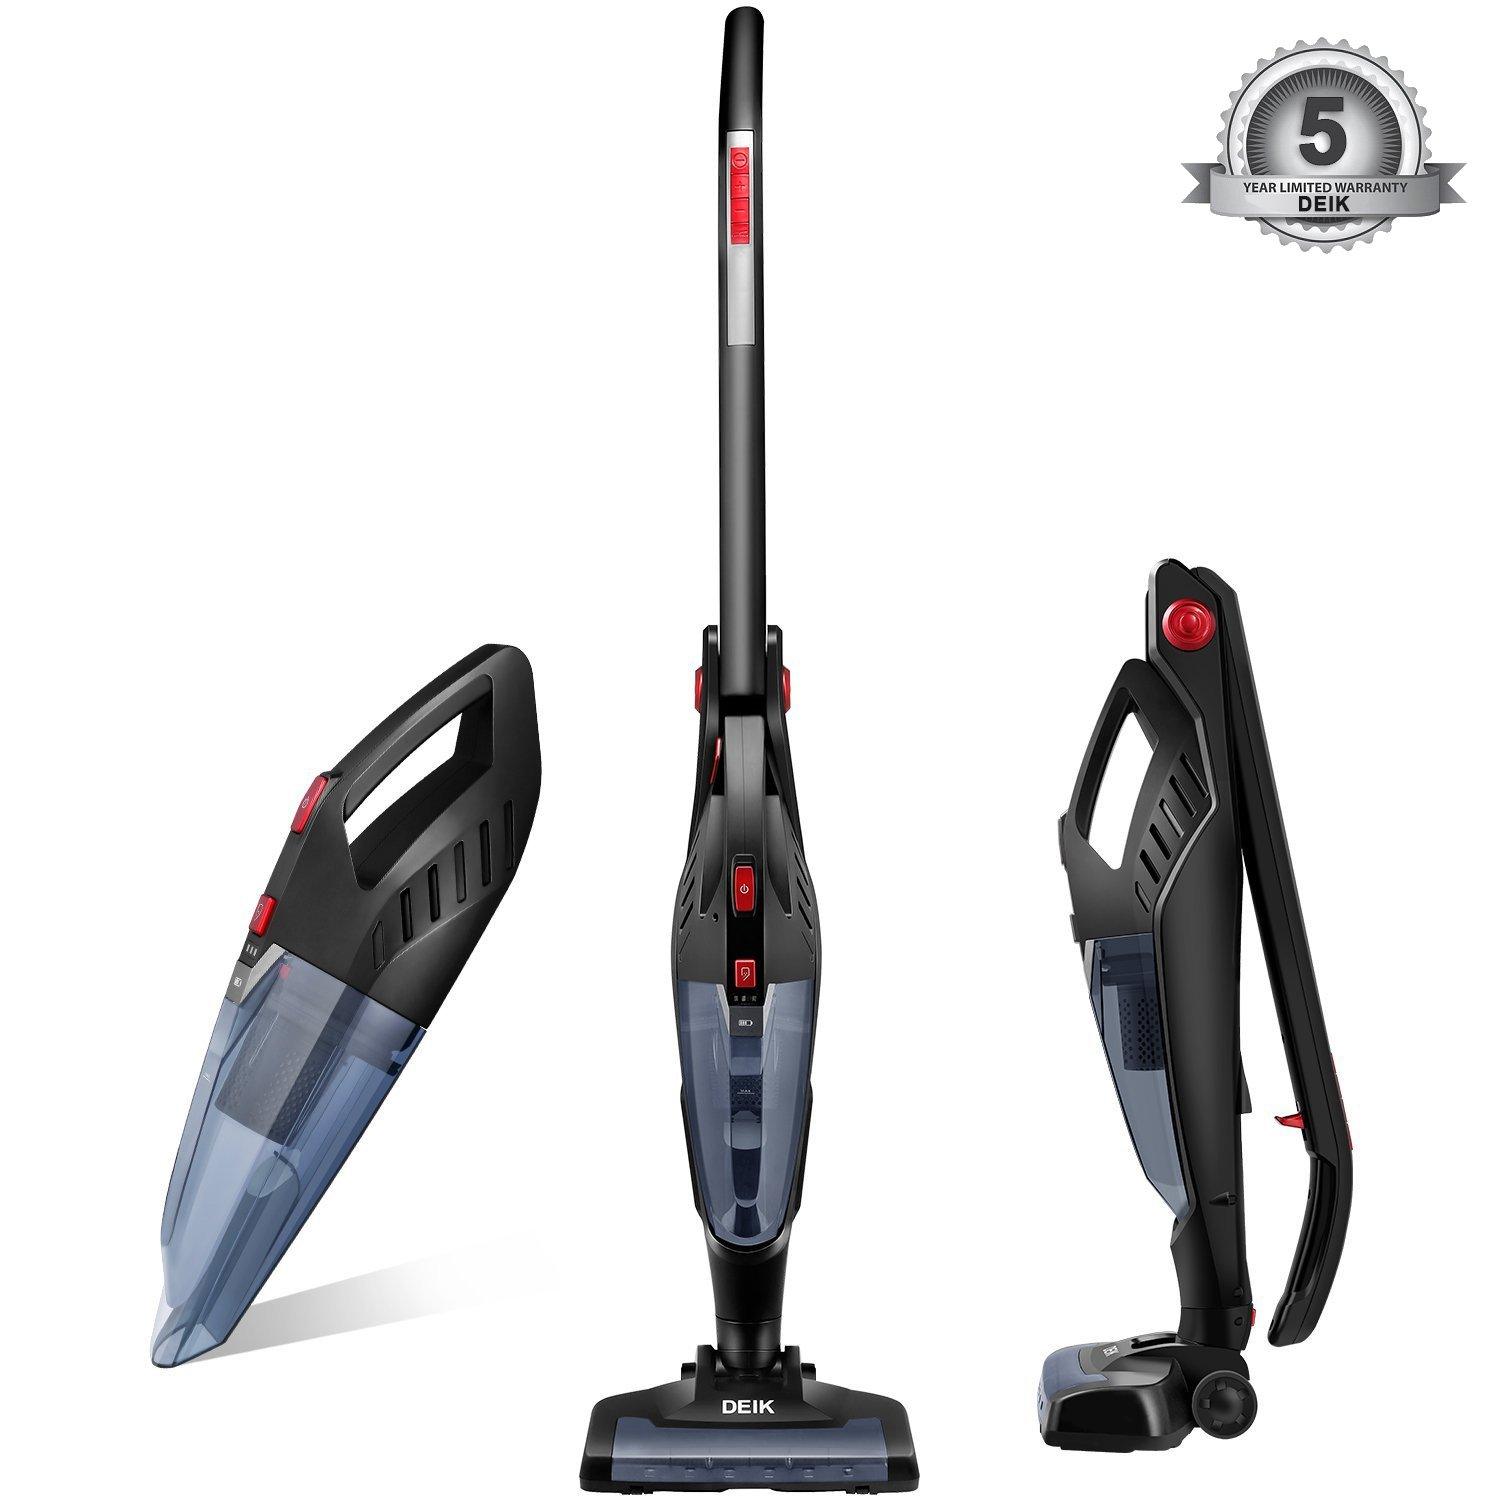 Deik Vacuum Cleaner, 2 in 1 Cordless Vacuum Cleaner Reviews